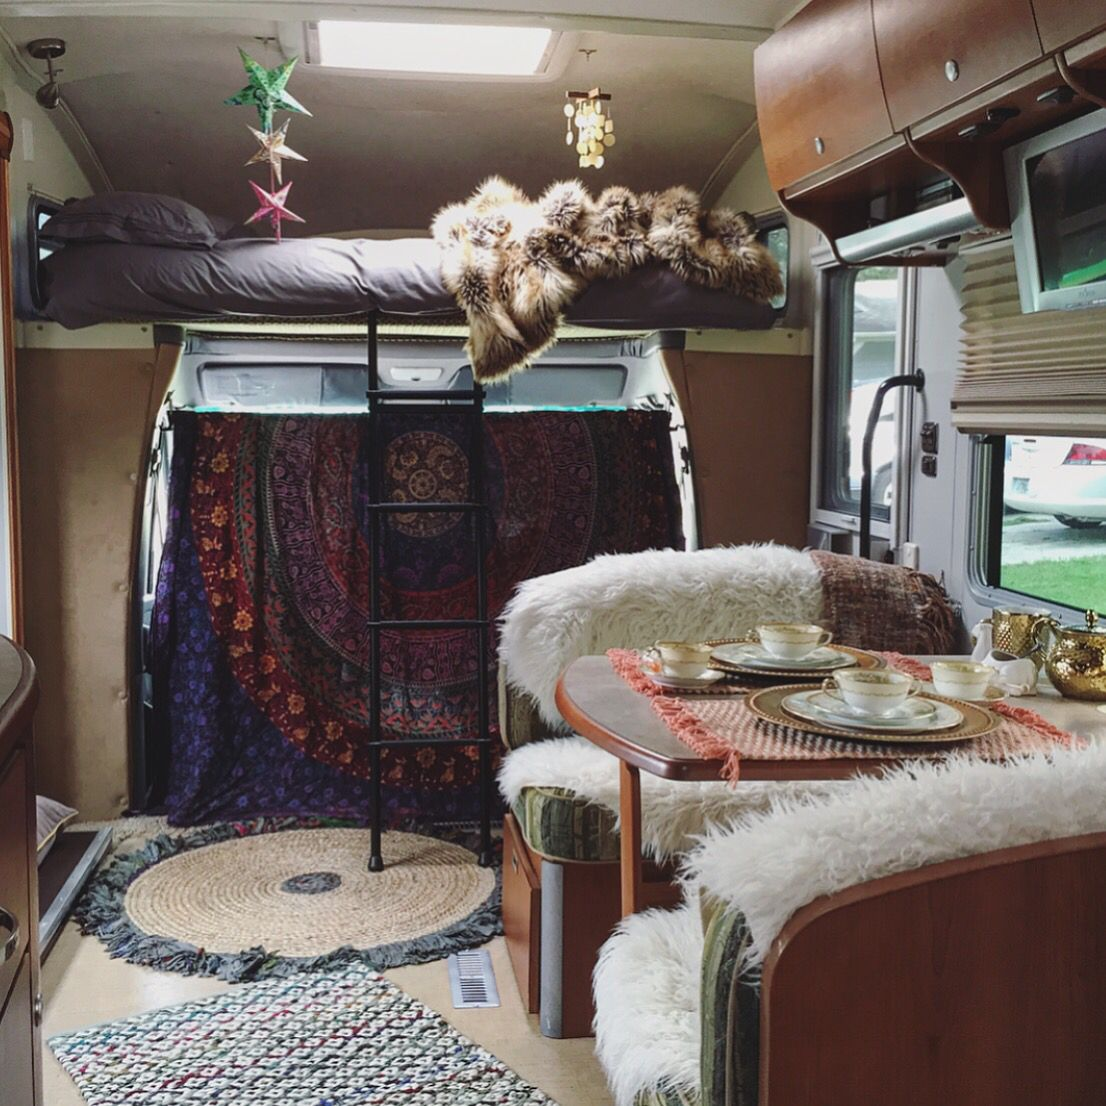 bohemian rv decor boho vibes rv living camper interior design rv interior camper. Black Bedroom Furniture Sets. Home Design Ideas